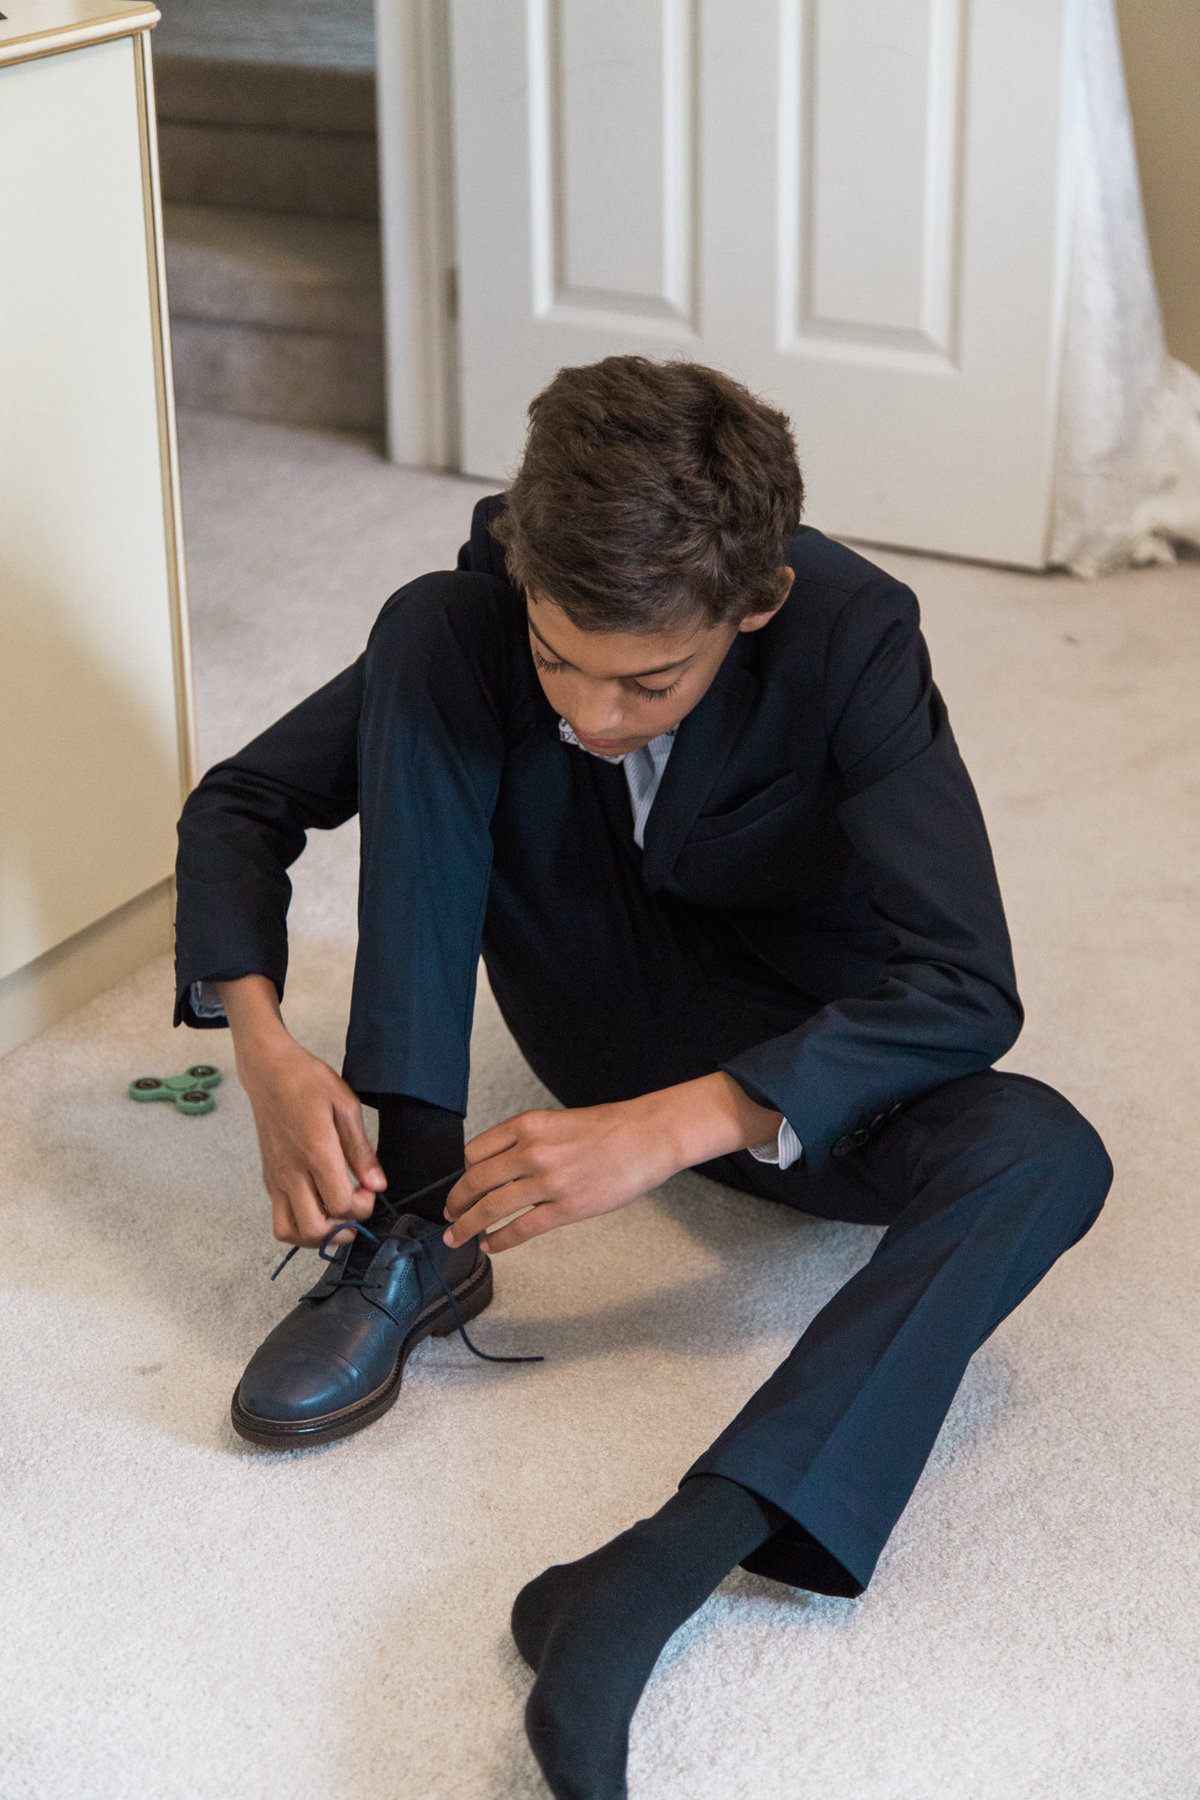 Brides son putting on his shoes